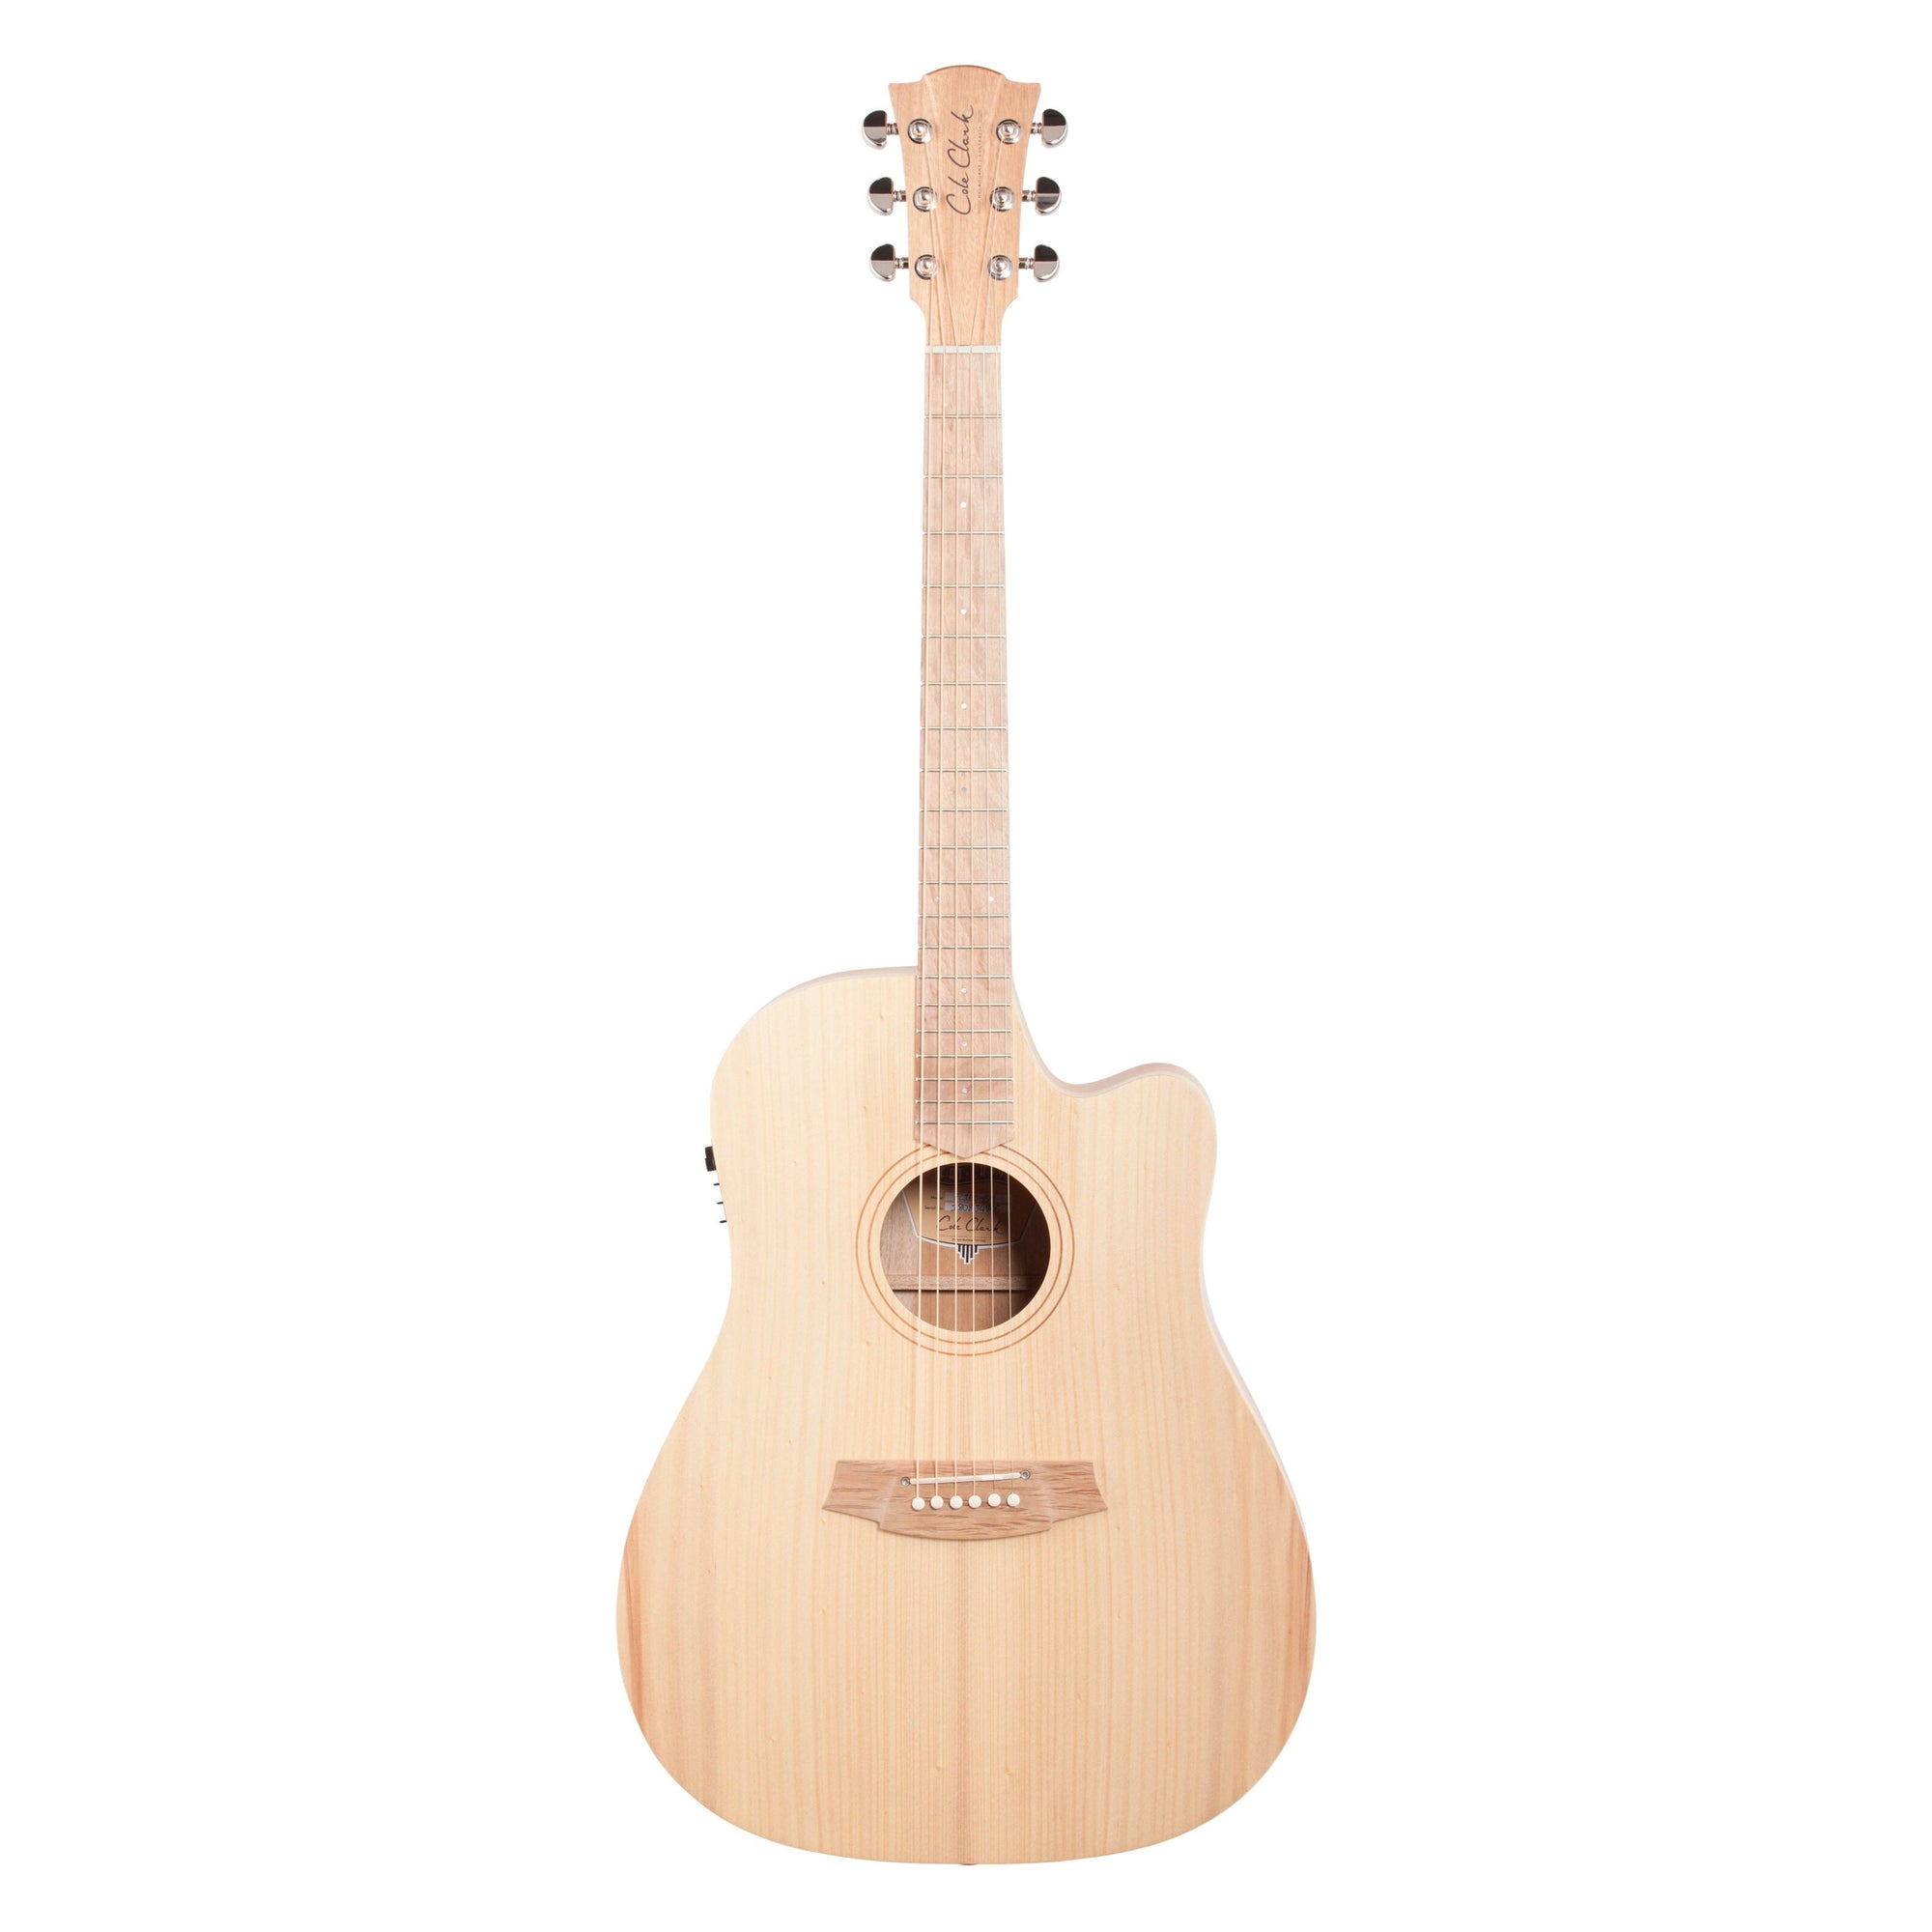 Cole Clark Fat Lady 1 Series Queensland Maple Acoustic-Electric Guitar